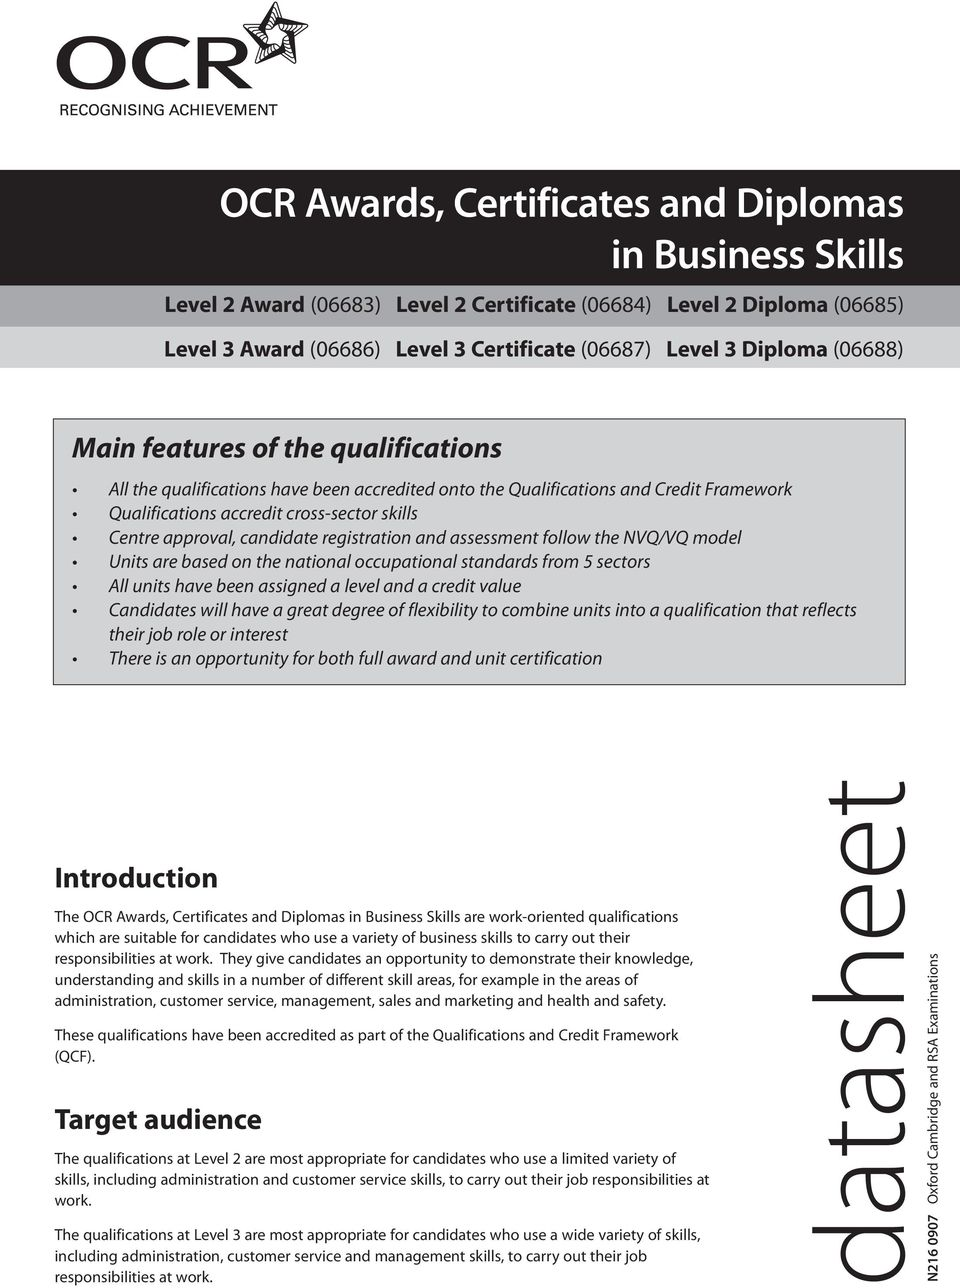 candidate registration and assessment follow the NVQ/VQ model Units are based on the national occupational standards from 5 sectors All units have been assigned a level and a credit value Candidates